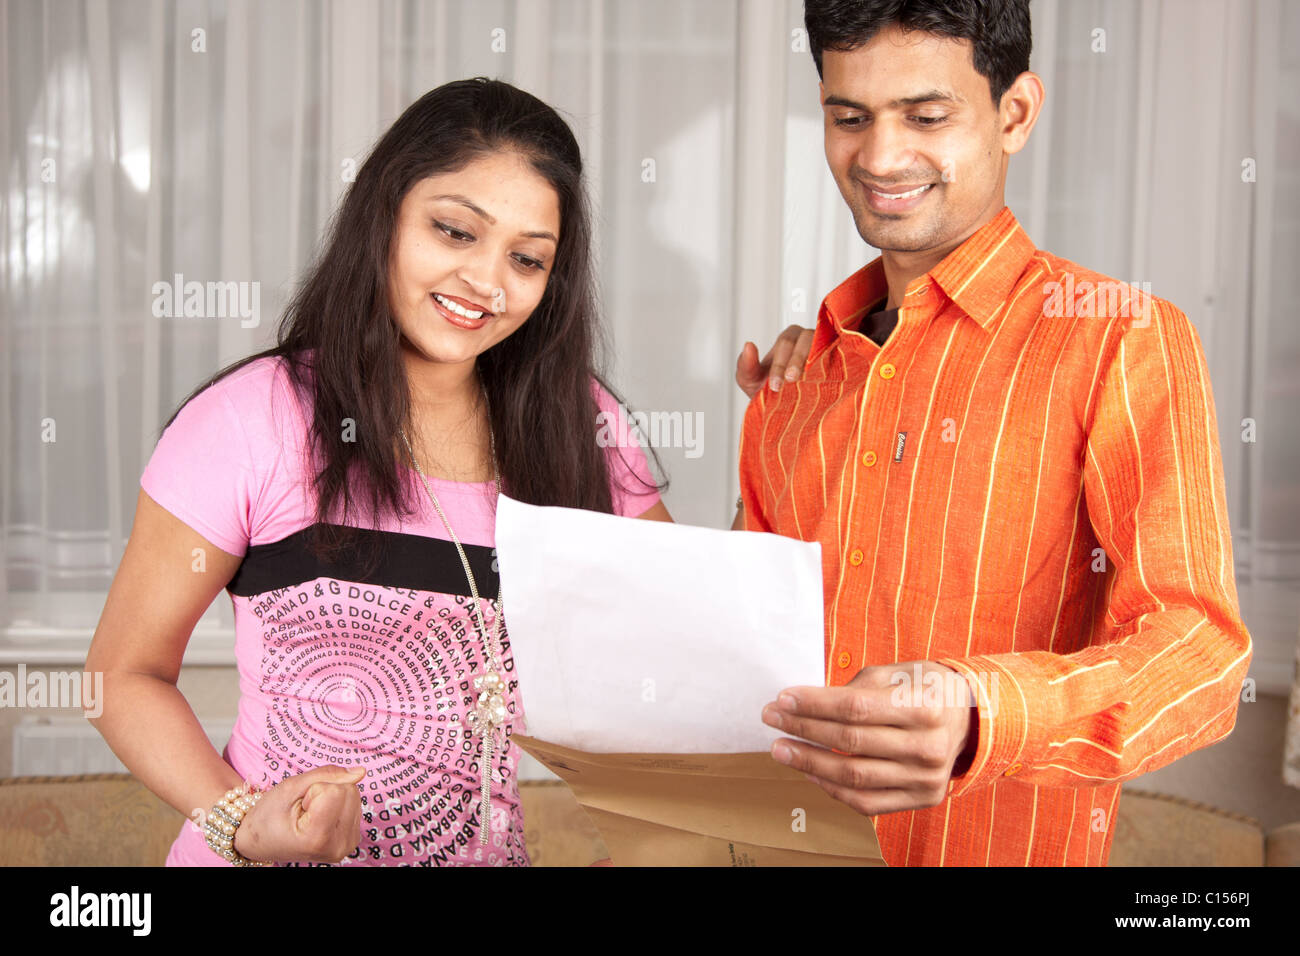 Two colleagues reading the contents of the letter and showing their anxiety by action and smile on their face. - Stock Image